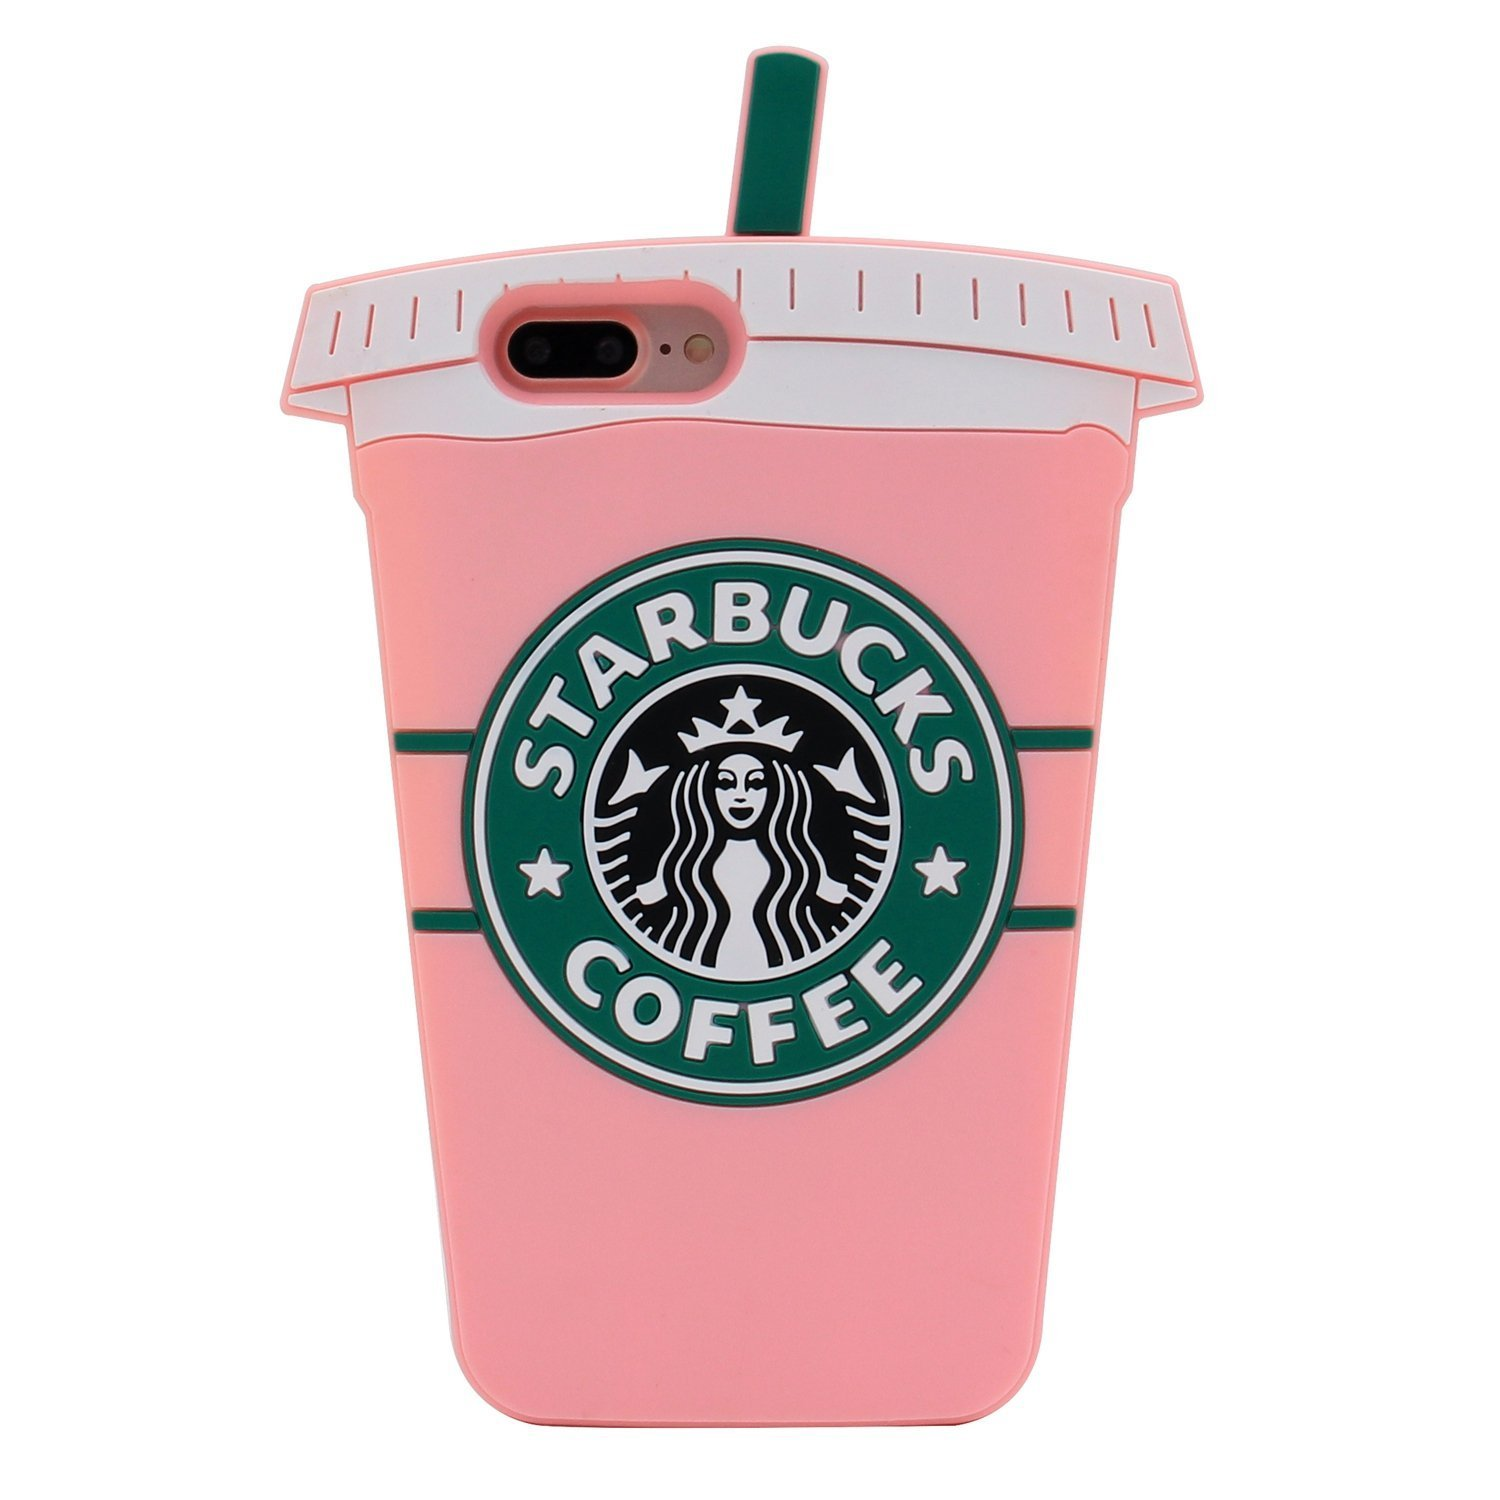 "Casesophy Starbucks Coffee Cup Case For I Phone 7+ 7 Plus 8+ 8 Plus Large Size 5.5"" Screen Soft Silicone Rubber 3 D Cartoon Cool Fun Bold Cute Fashion Hot Gift Women Girls Teens Kids by Casesophy"